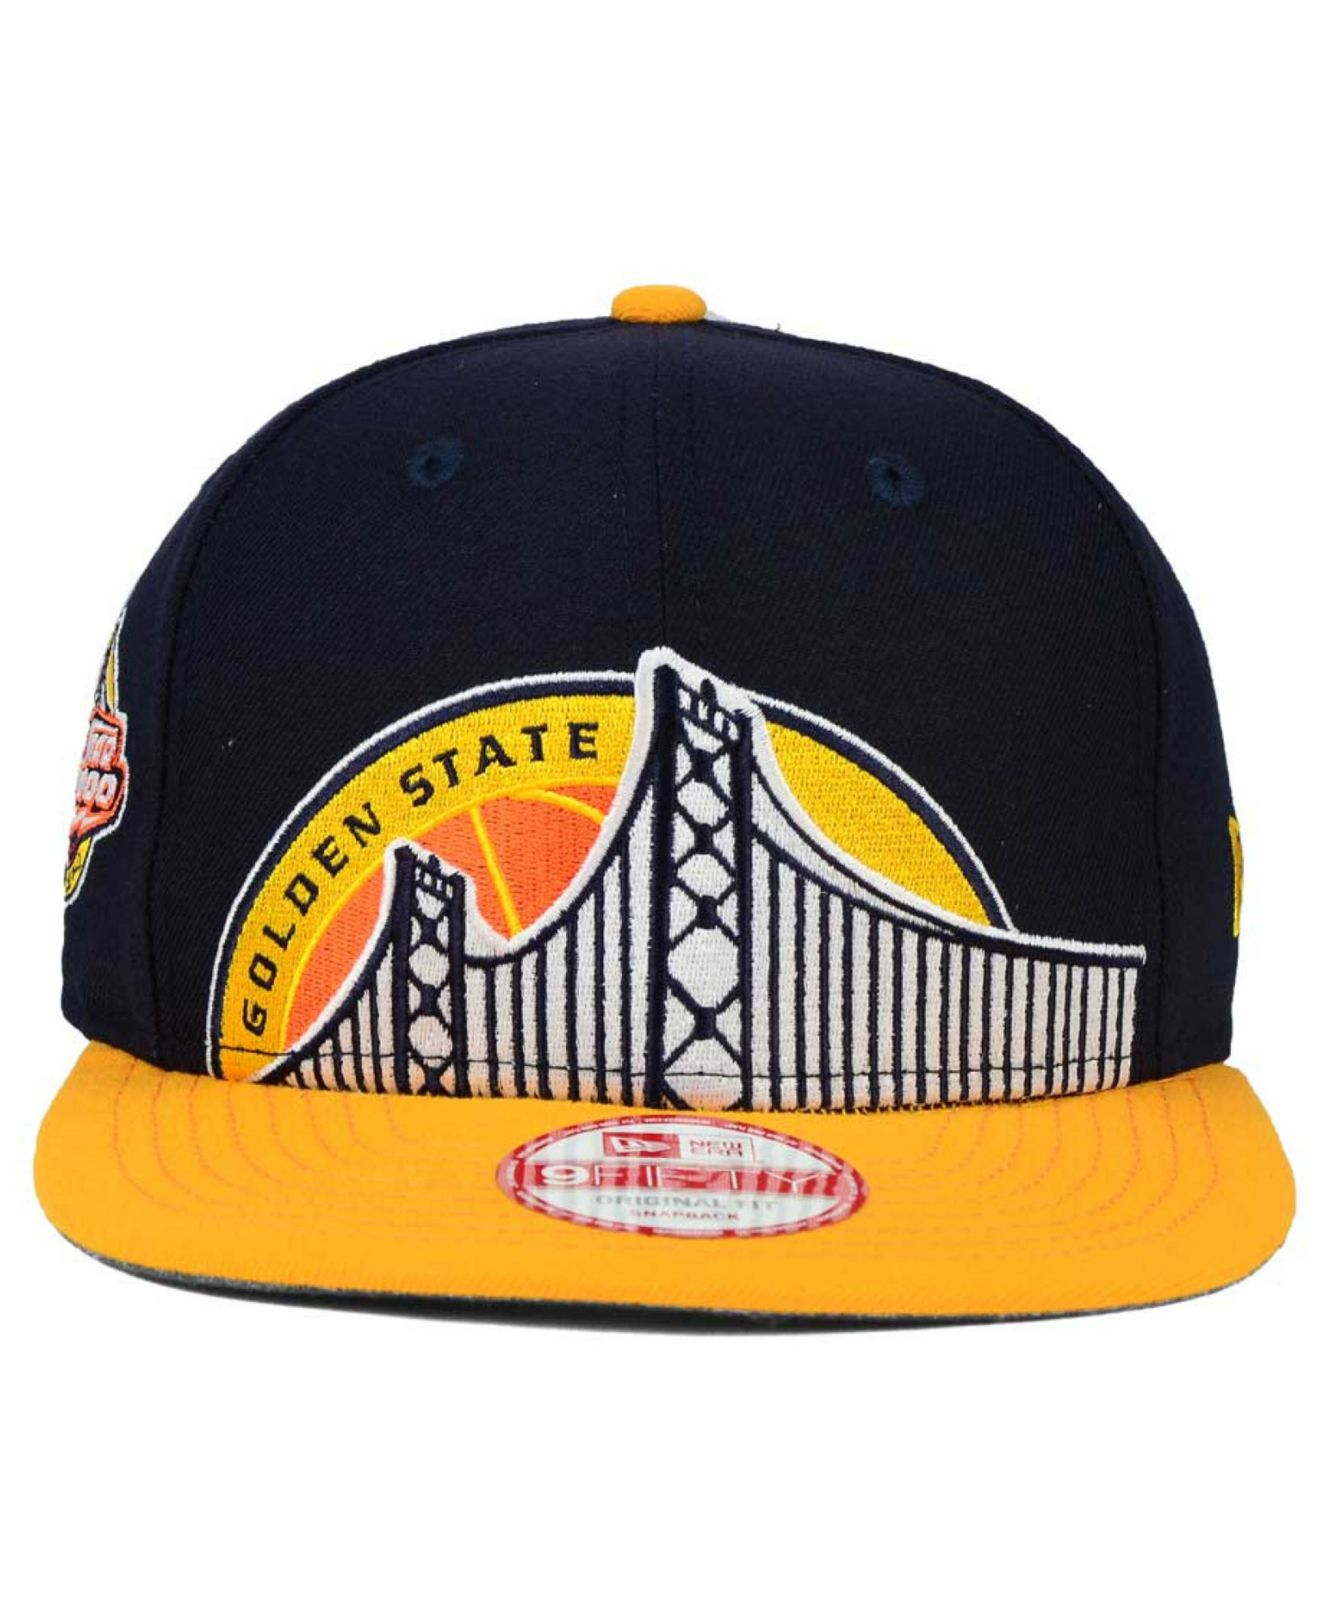 premium selection 1681f 35a67 ... cheap lyst ktz golden state warriors oversizer 9fifty snapback cap in  aeede 1a209